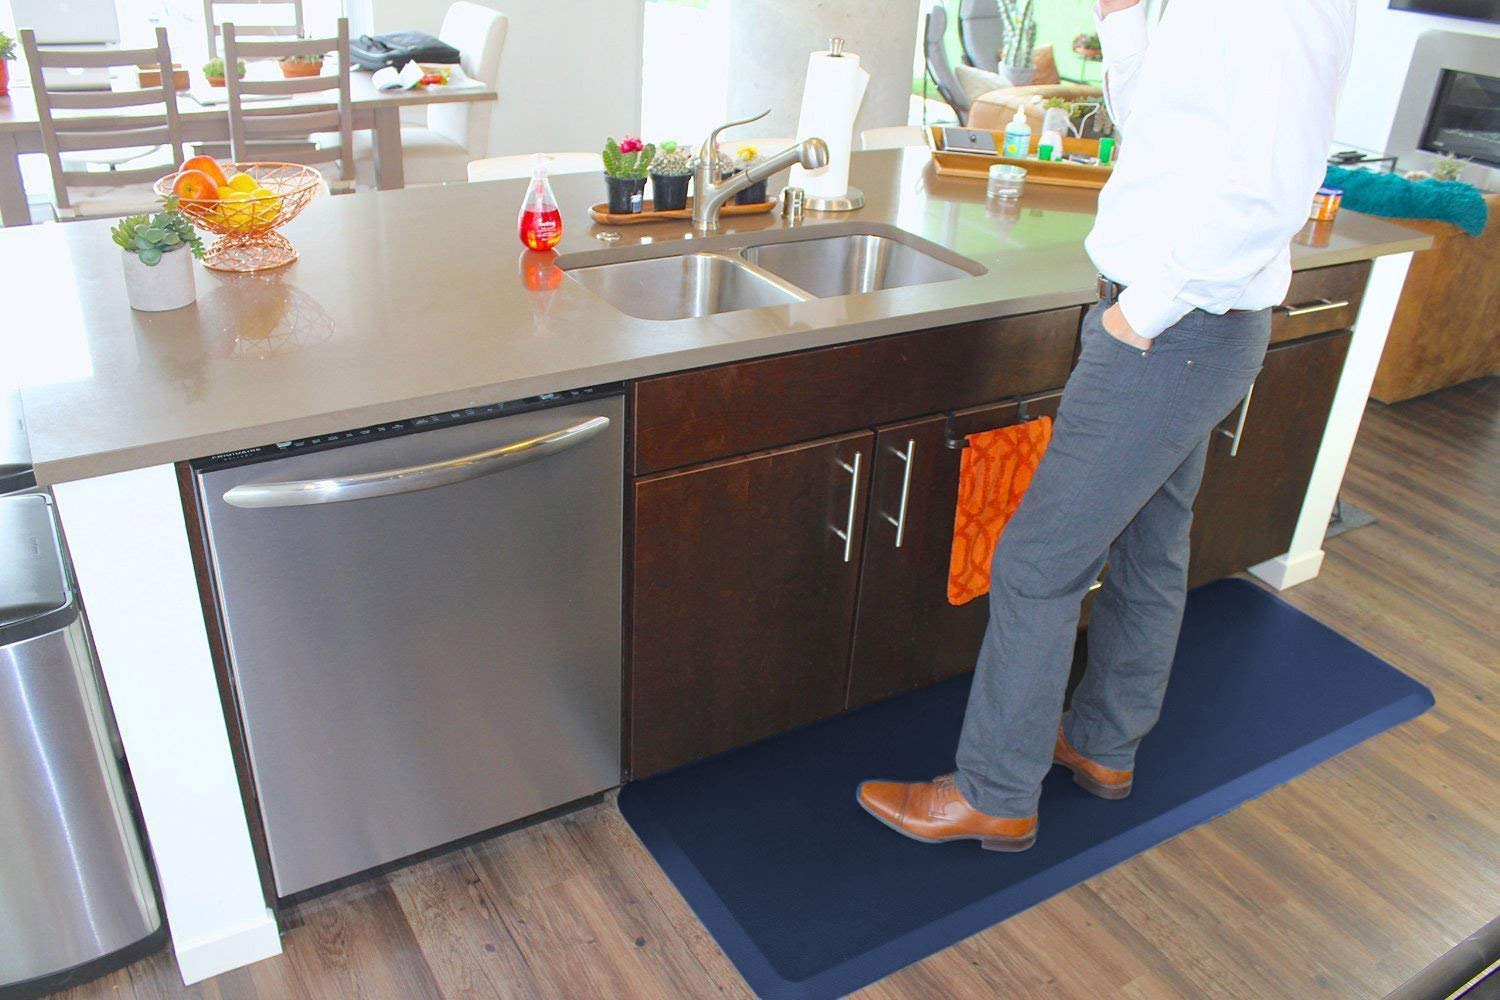 and Back Pain and Garages Relieves Foot Knee Kitchens 20x32x3//4-Inch, Midnight Black Anti Fatigue Comfort Floor Mat By Sky Mats -Commercial Grade Quality Perfect for Standup Desks